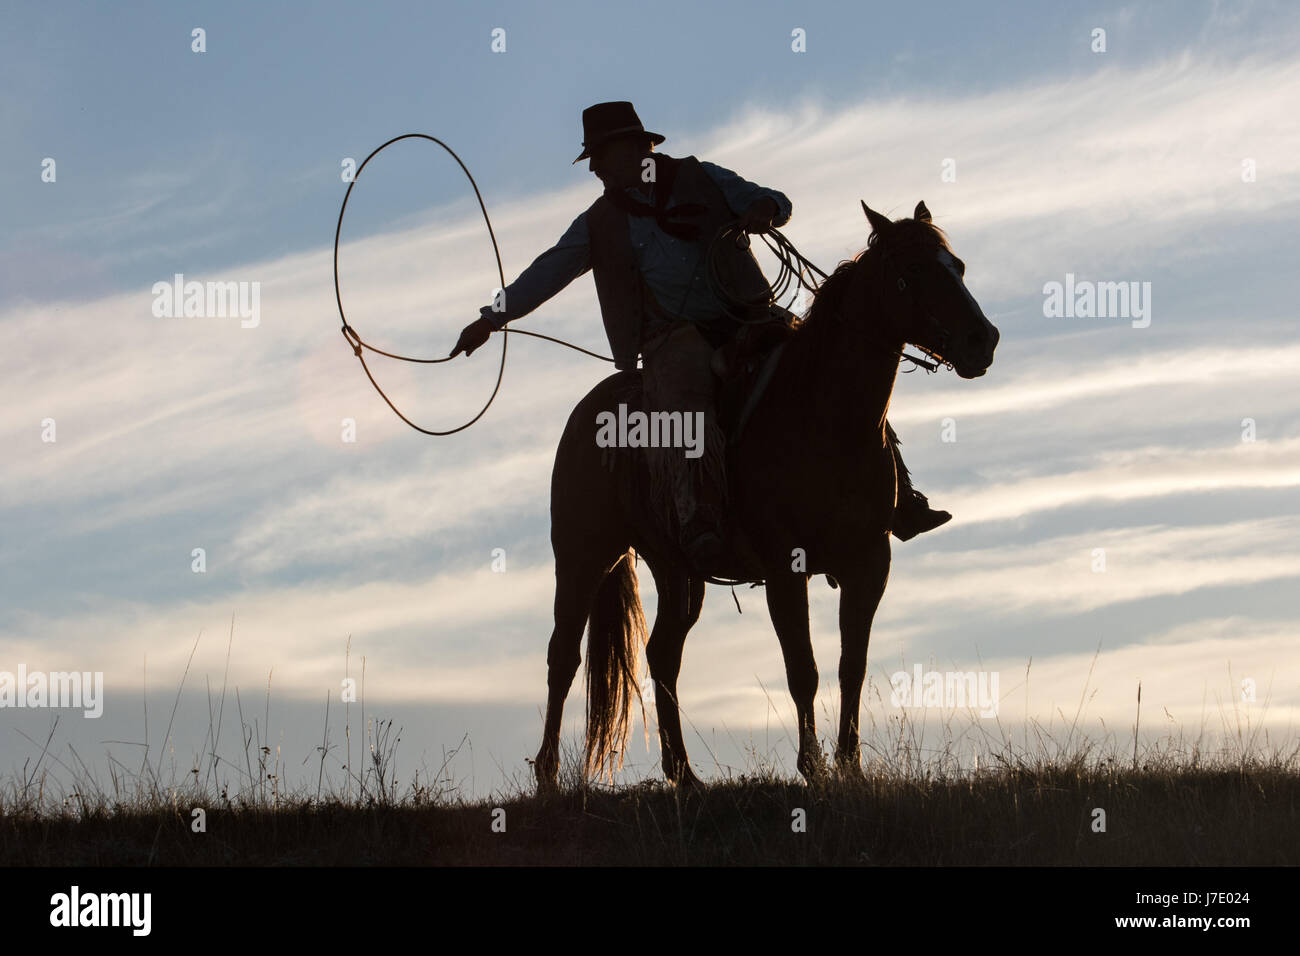 cowboy spinning lasso at sunset - Stock Image